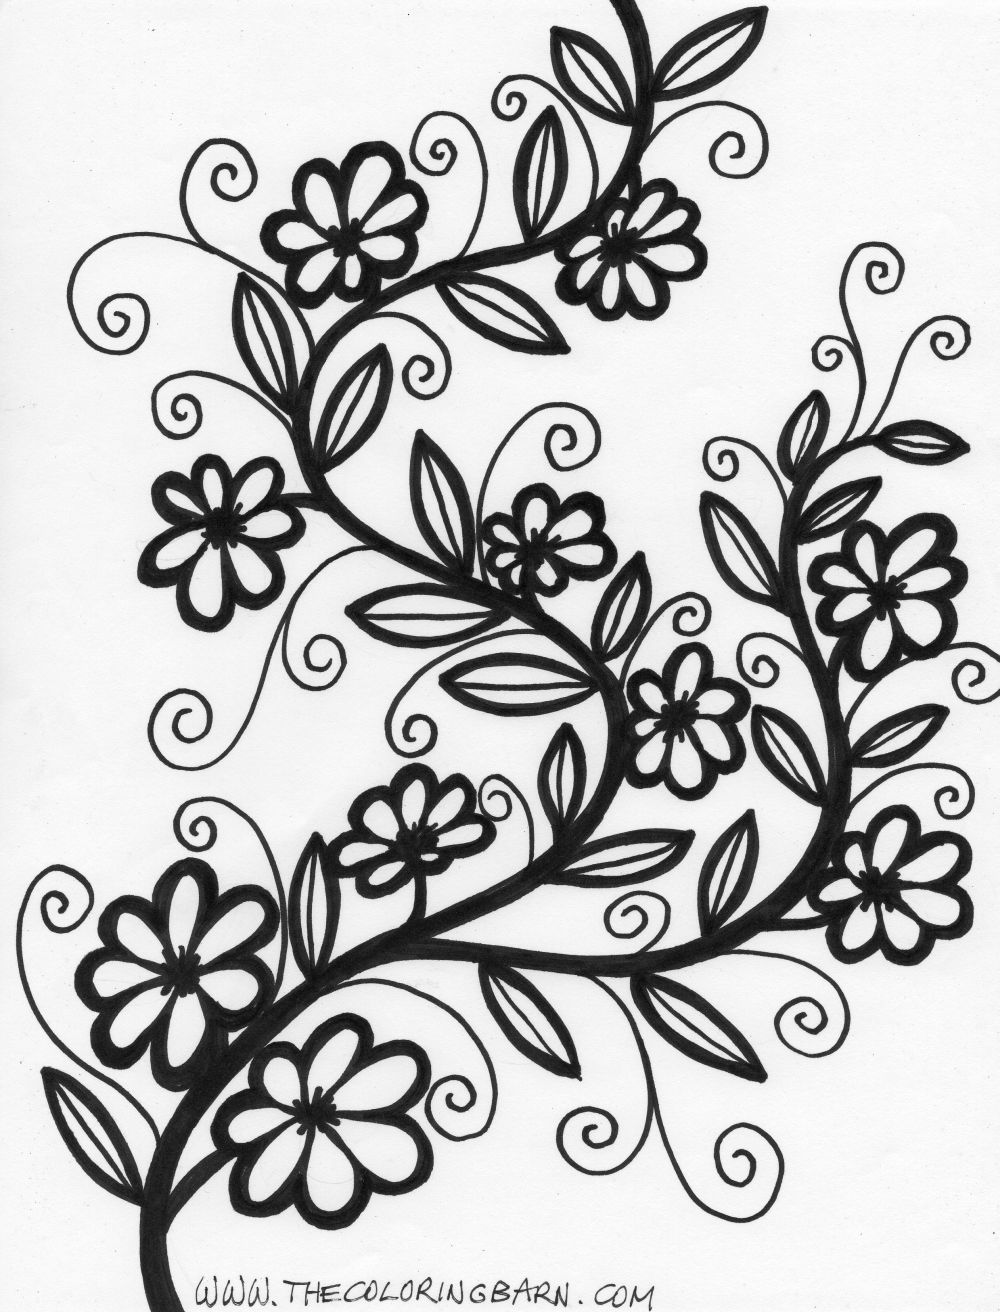 Coloring pictures to print of flowers - Flower Coloring Pages For Adults More Flower Coloring Pages Coloring Barn Coloring Pages You Will